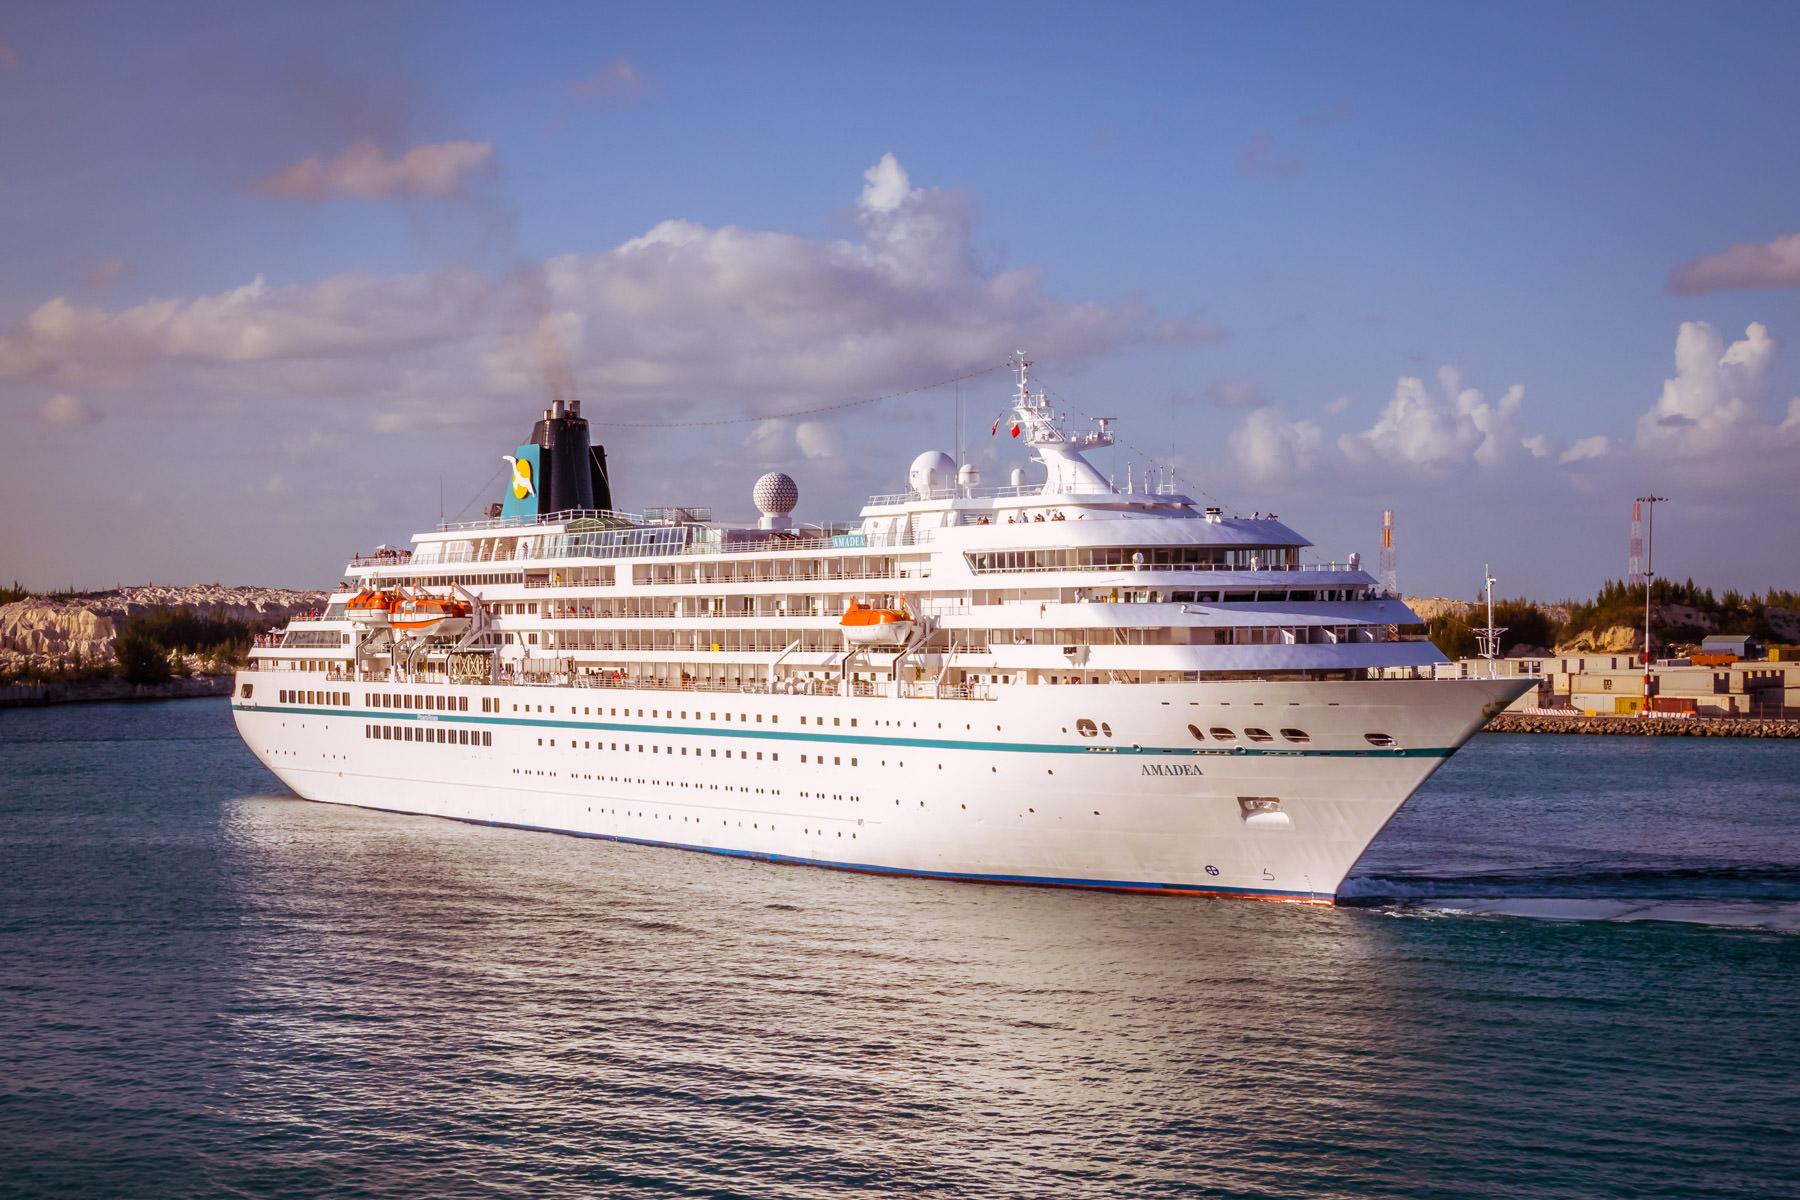 The MS Amadea sets sail from Freeport Harbour in The Bahamas.